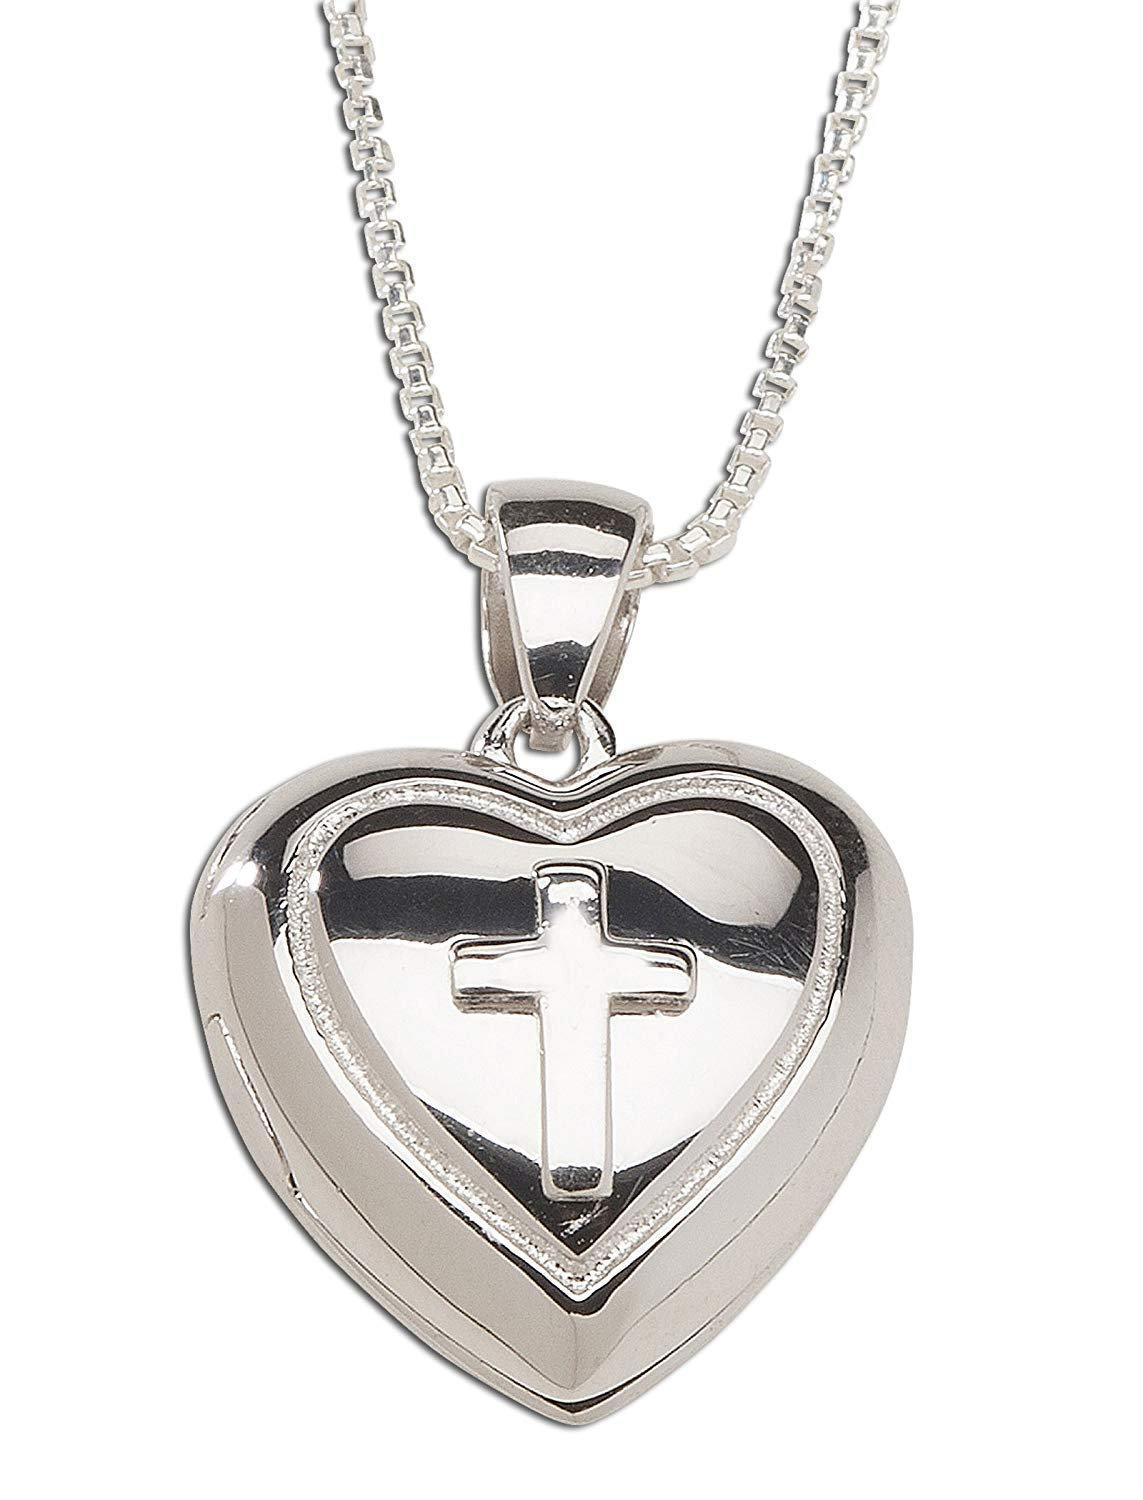 Finejewelers Sterling Silver Laser Designed Cross Pendant Necklace Chain Included